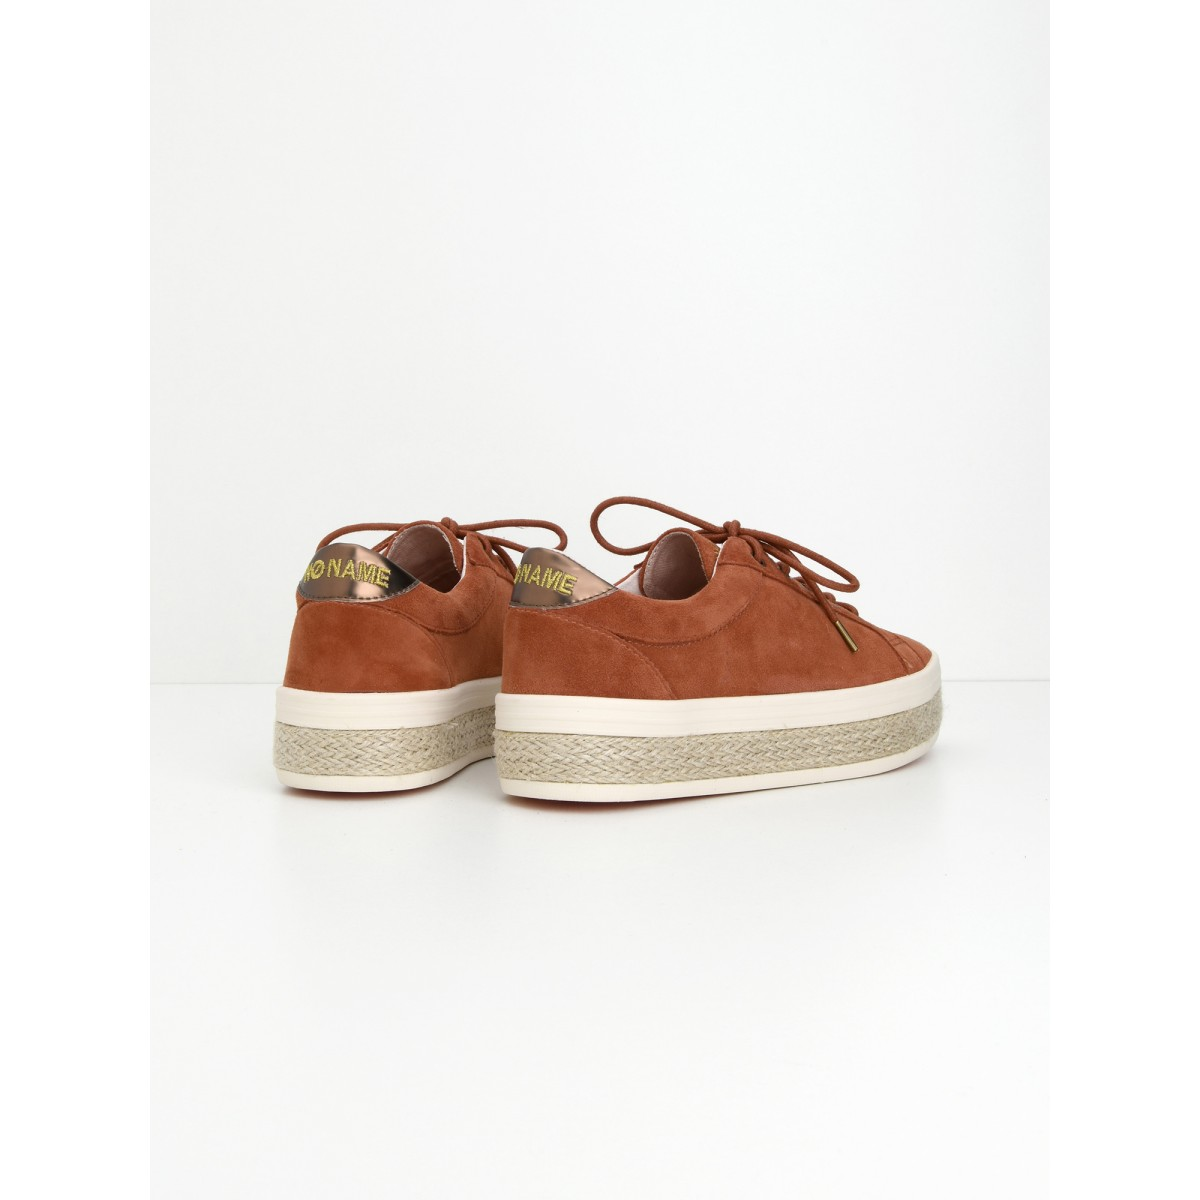 No Name Malibu Bridge - Goat Suede - Terracotta